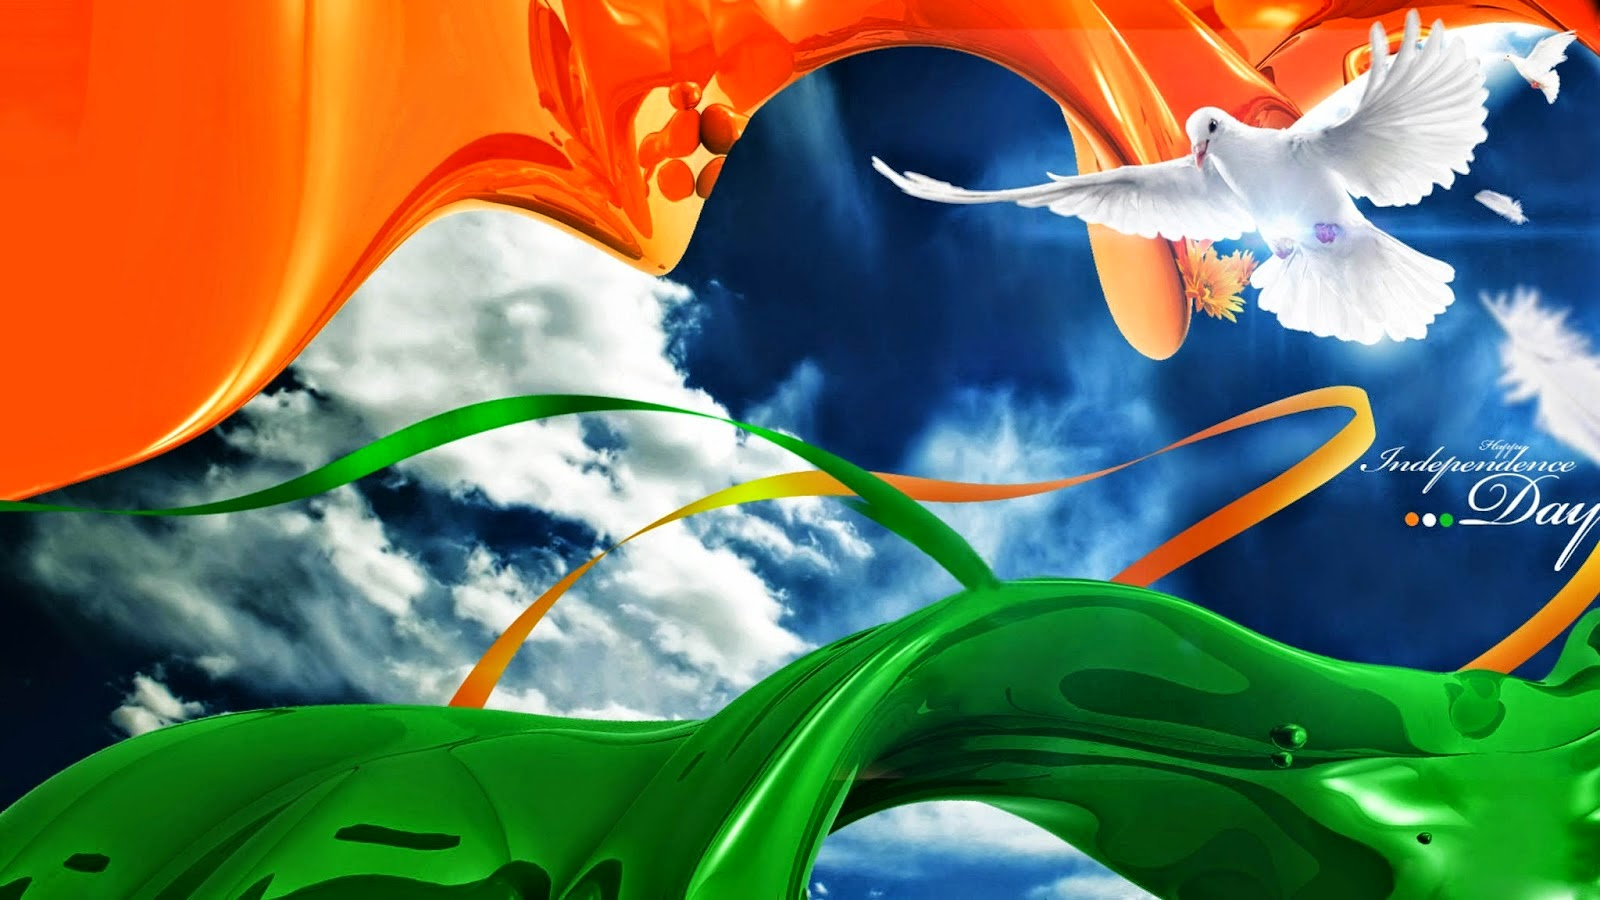 Download indian flag wallpaper hd for pc gallery - Indian flag hd wallpaper for android ...